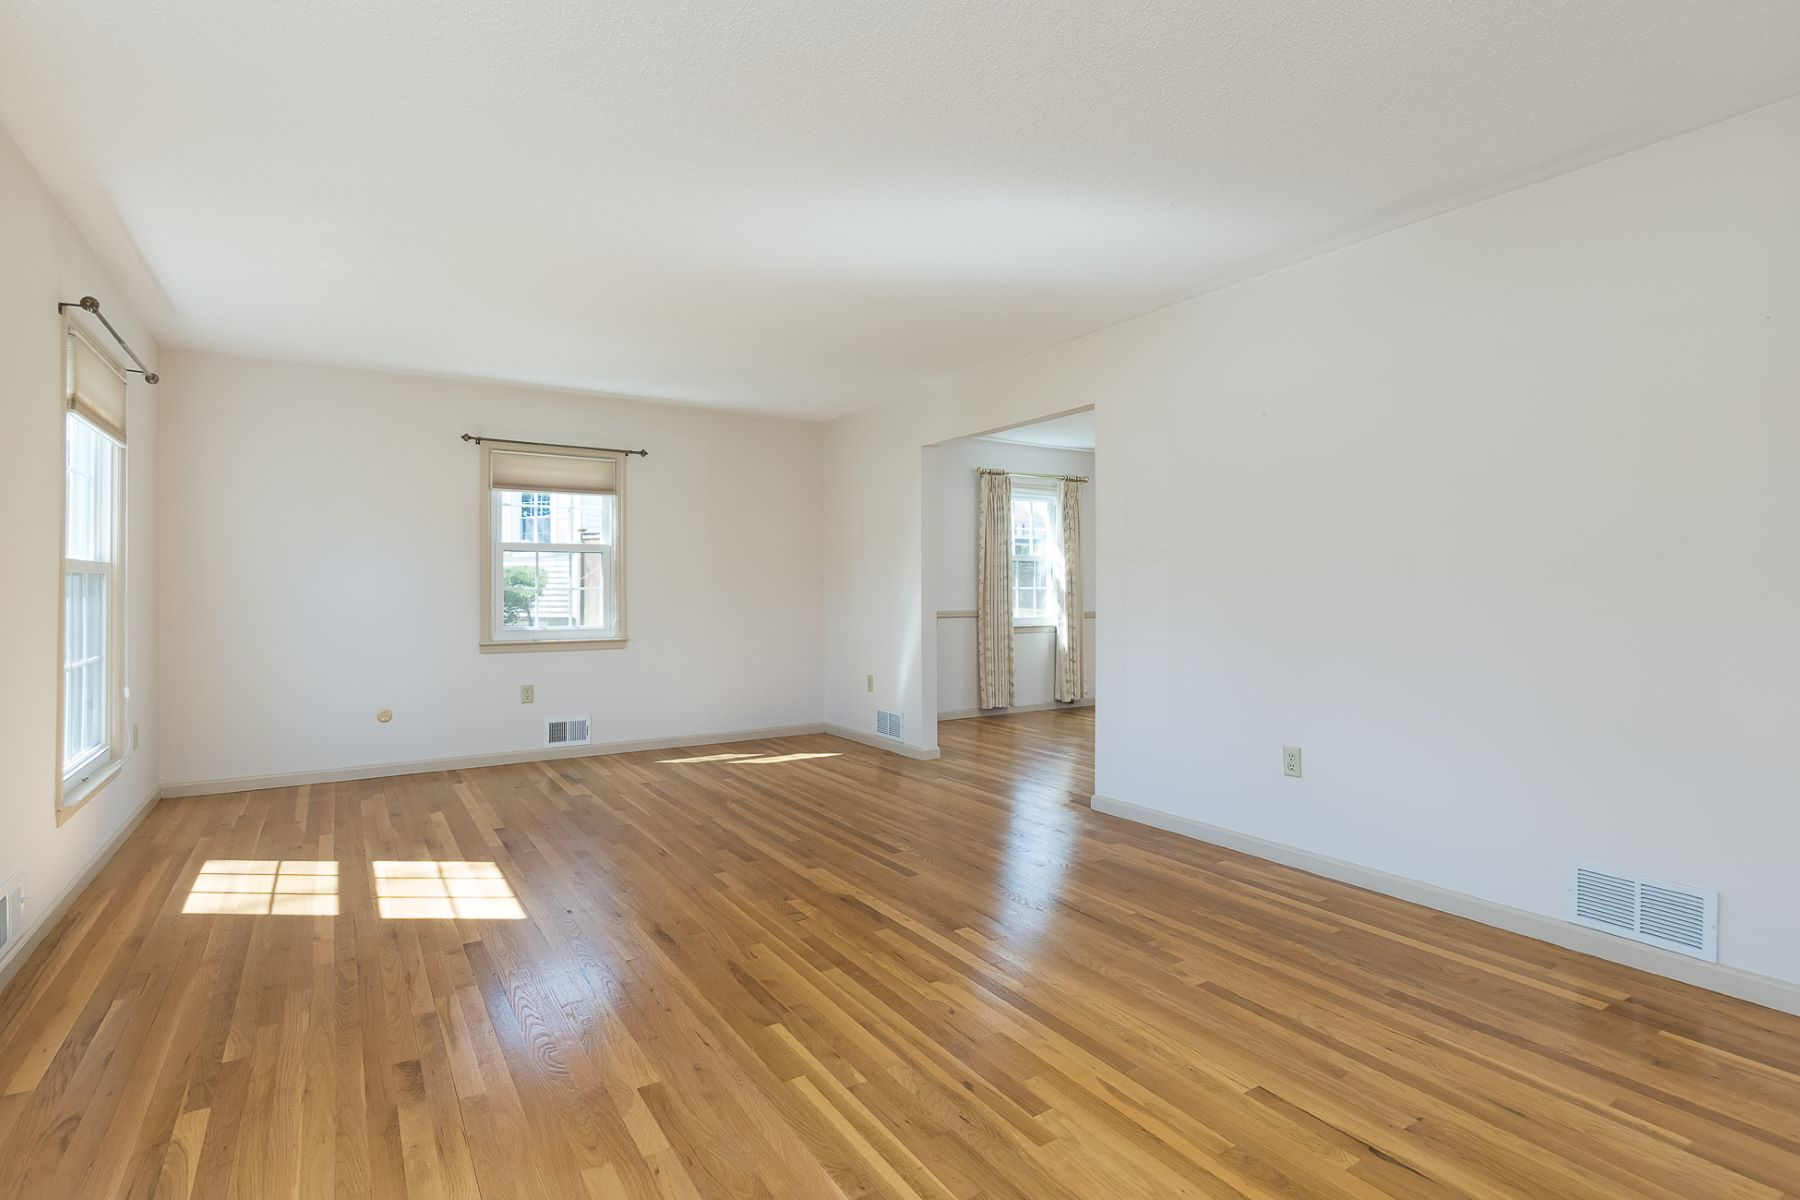 Additional photo for property listing at Renovations Shine in Lawrenceville 4-Bedroom 8 Woodlane Road, Lawrenceville, New Jersey 08648 United States